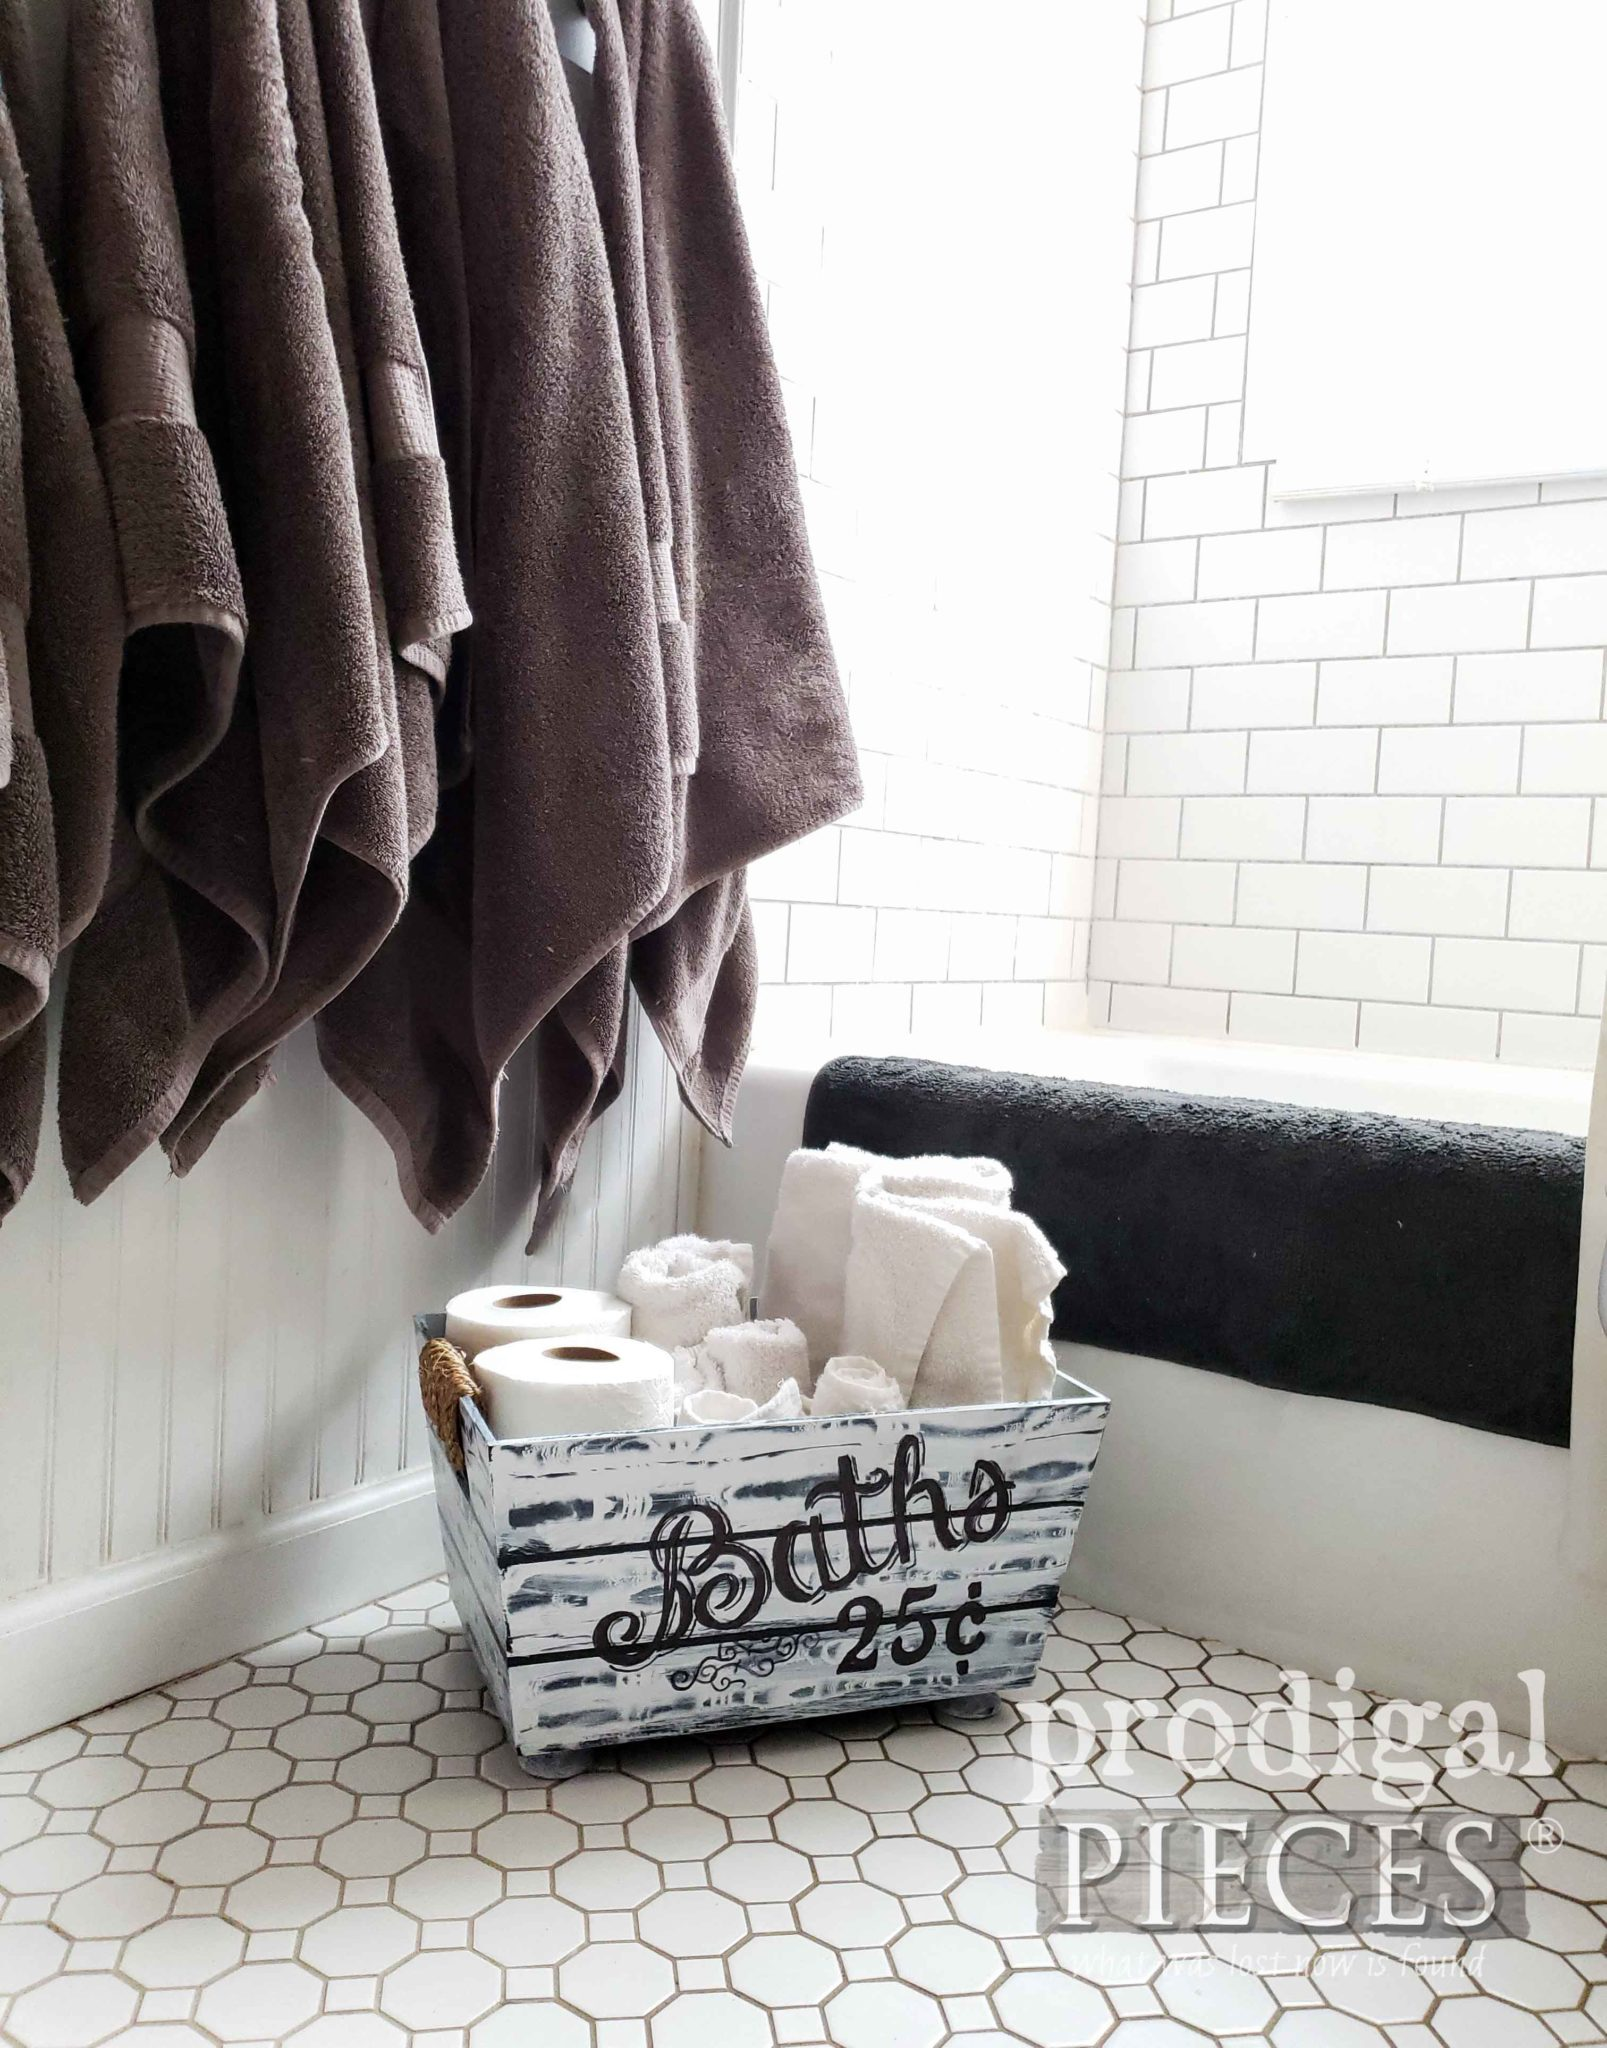 Farmhouse Style Bathroom Bin Storage for Towels and TP | Tutorial by Larissa of Prodigal Pieces | prodigalpieces.com #prodigalpieces #farmhouse #bathroom #storage #home #homedecor #homedecorideas